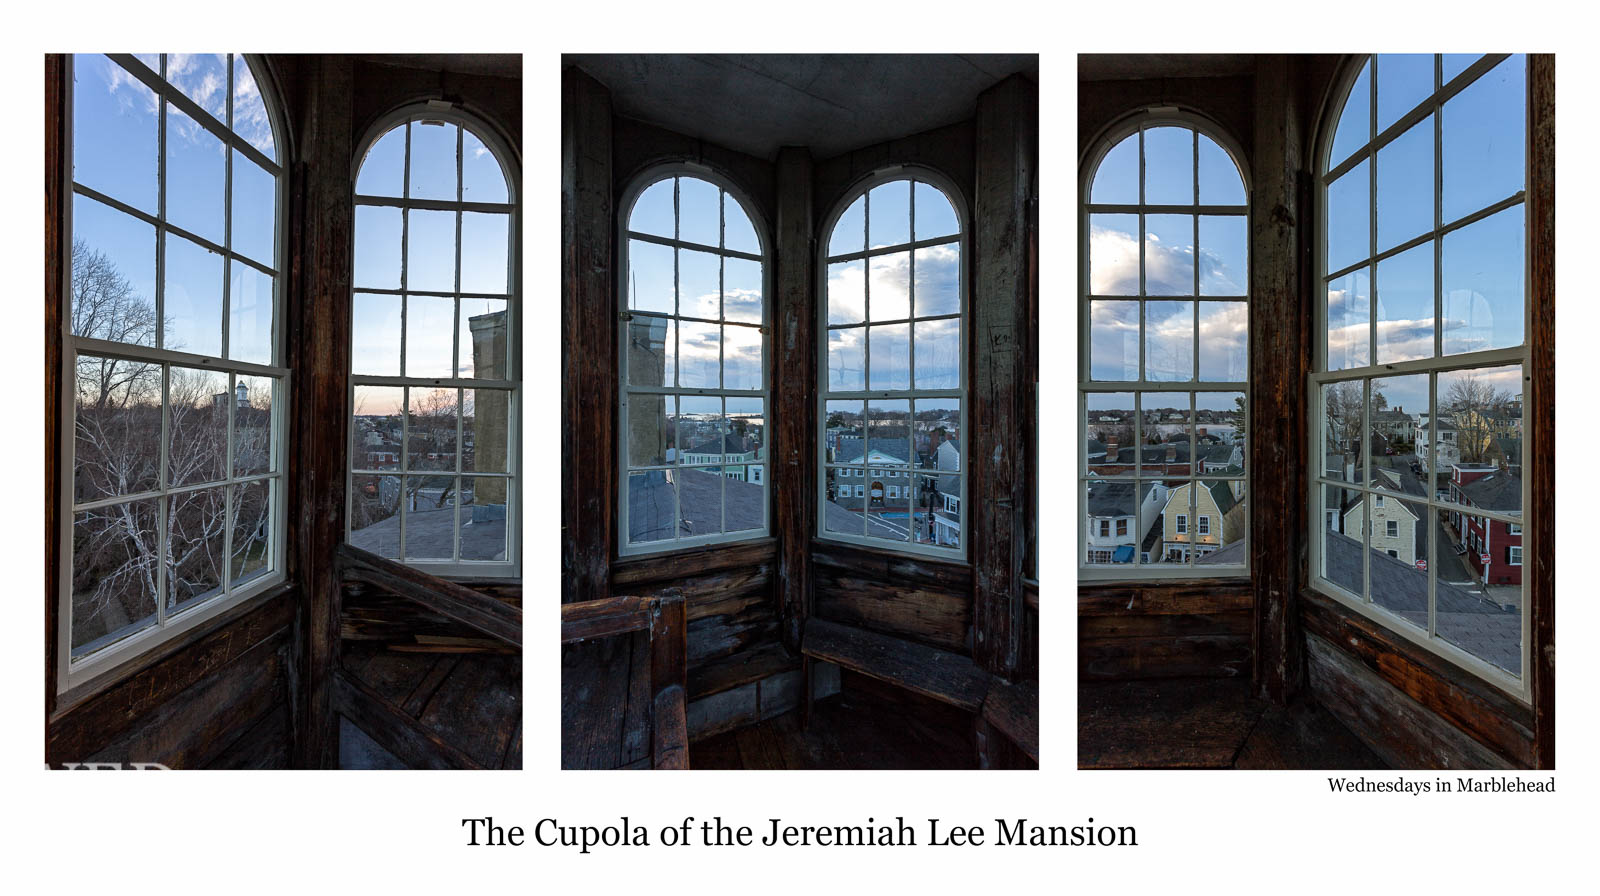 The Cupola of the Jeremiah Lee Mansion